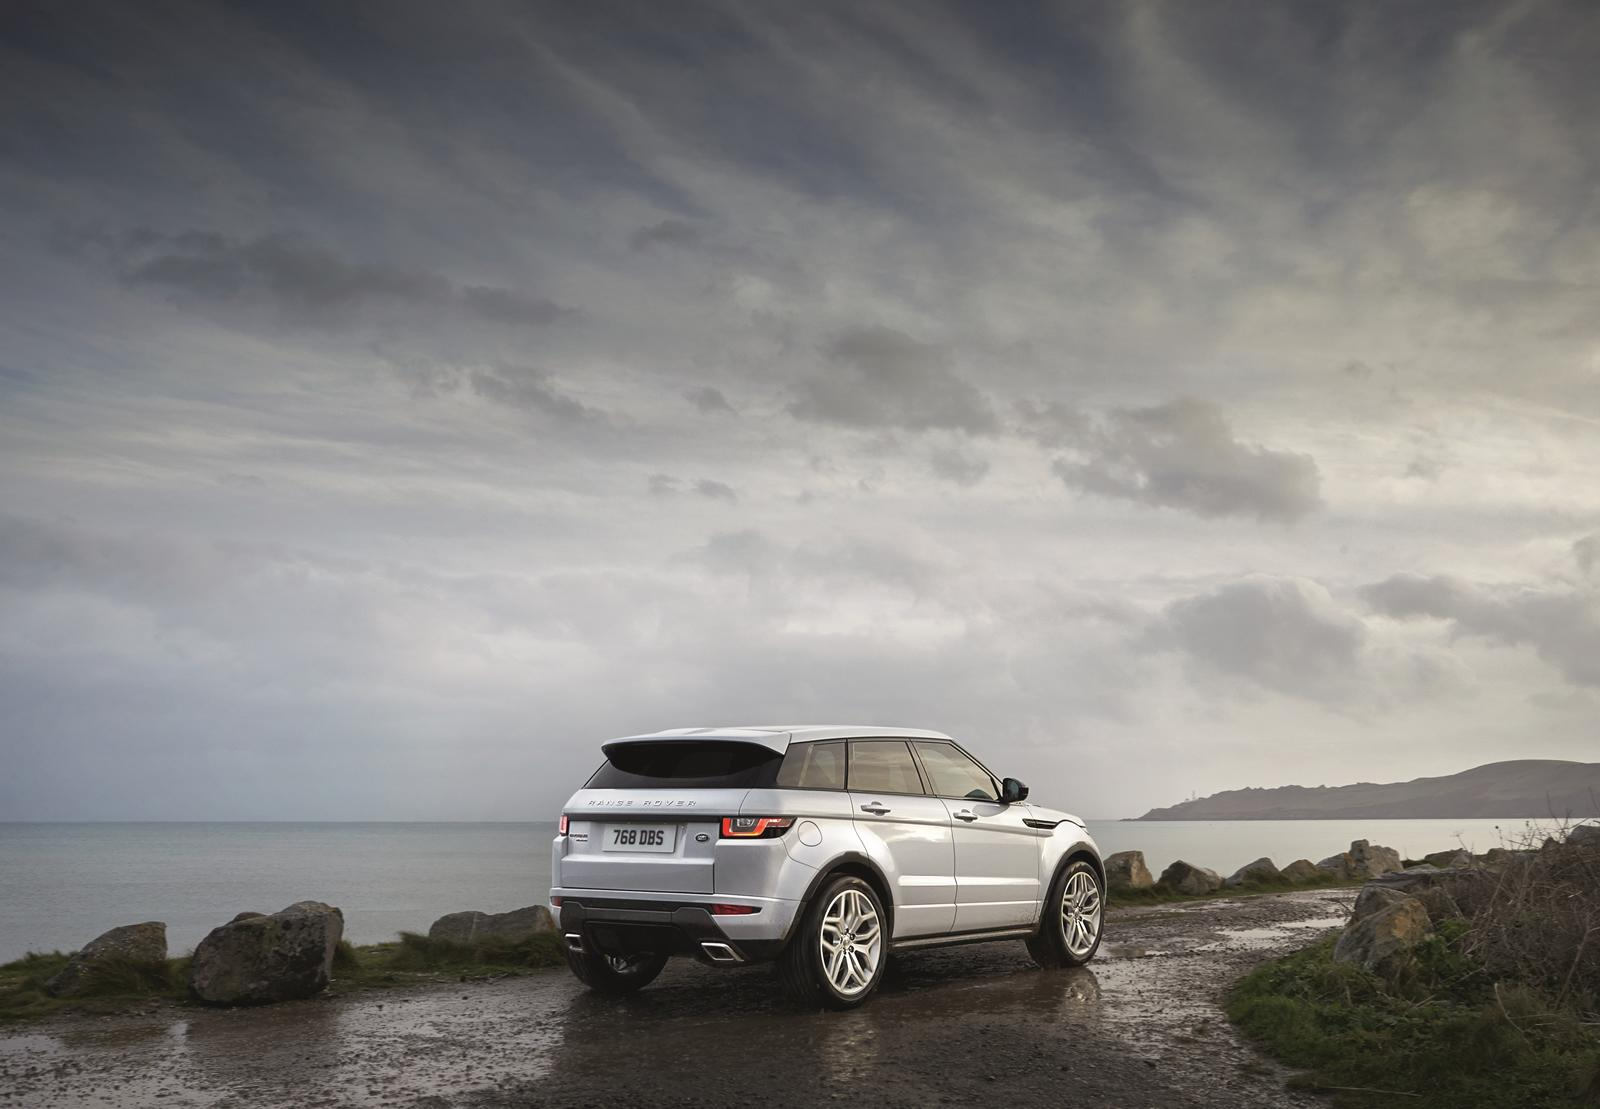 2016 Range Rover Evoque Prices Start From 30 200 In The Uk